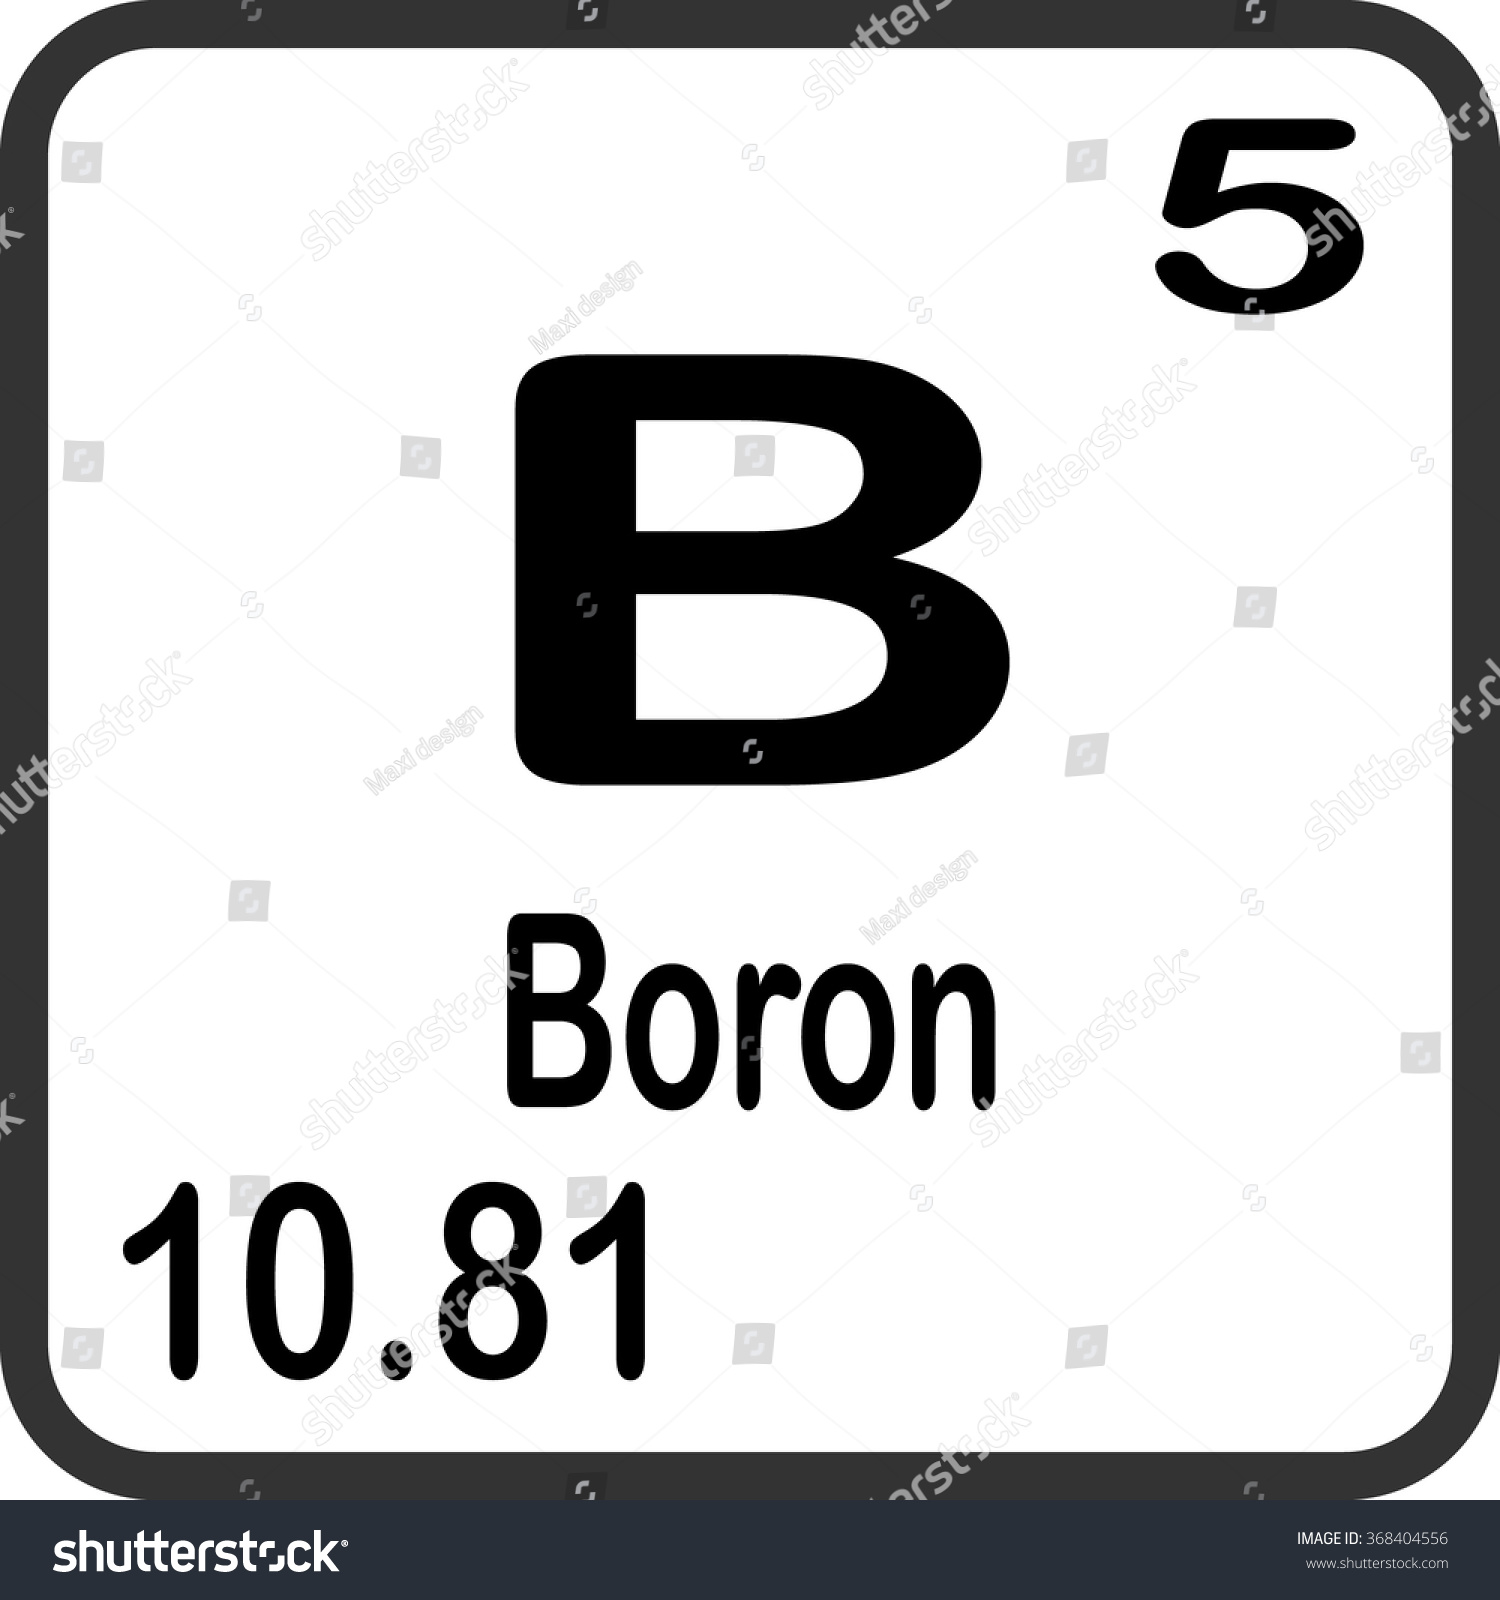 Periodic table elements boron stock vector 368404556 shutterstock buycottarizona